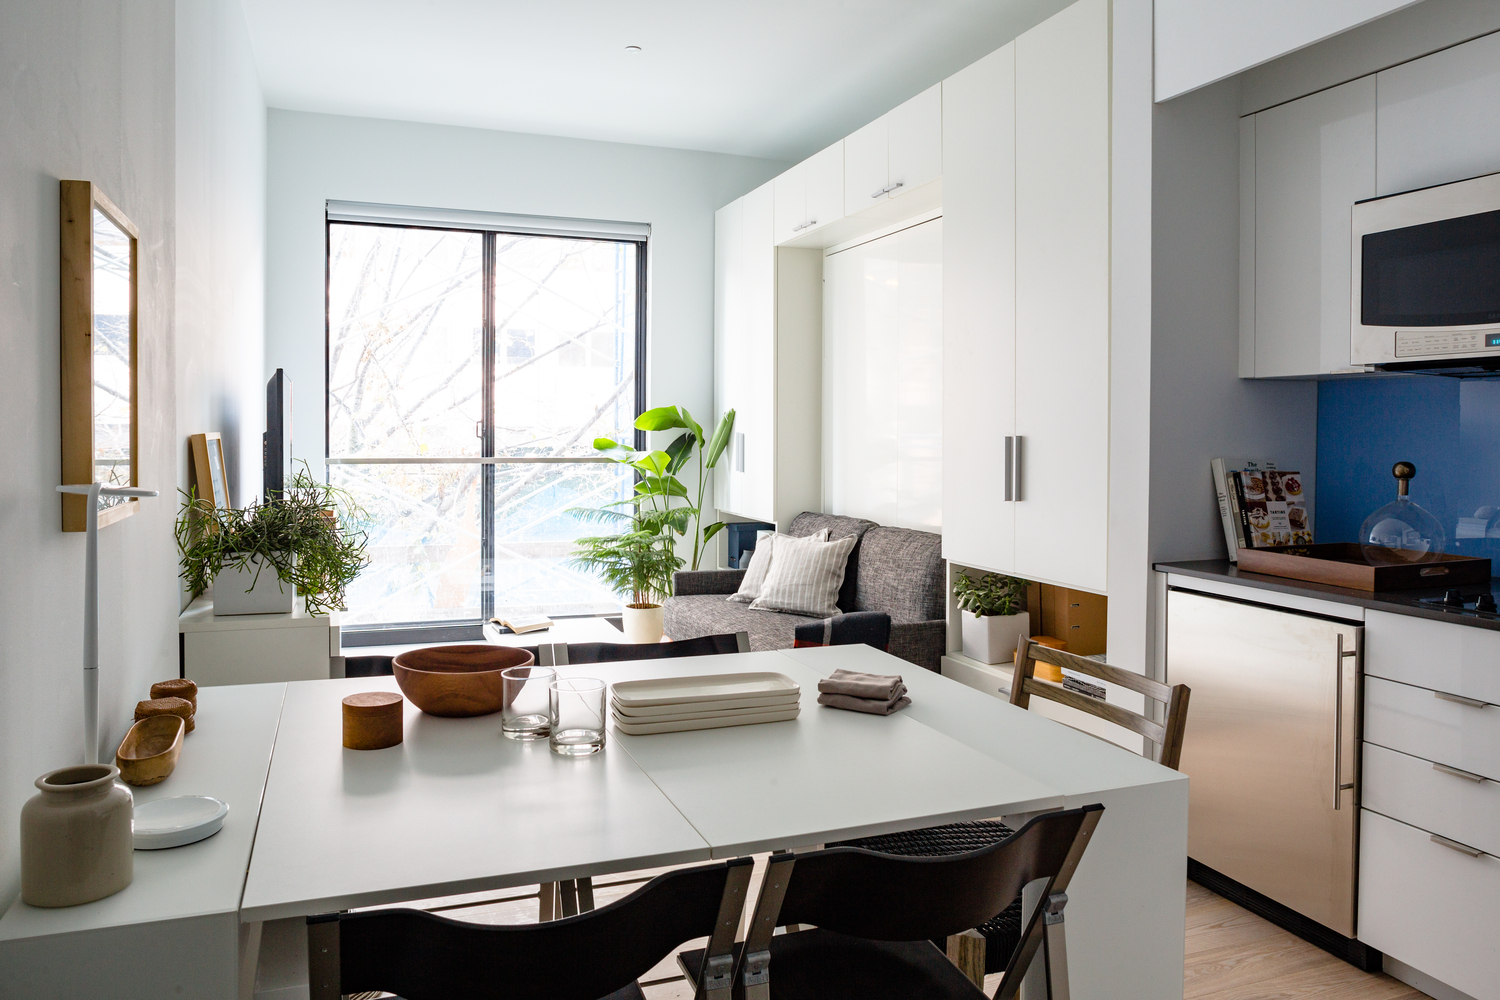 Gallery of Micro-Apartments: Are Expanding Tables and Folding ...